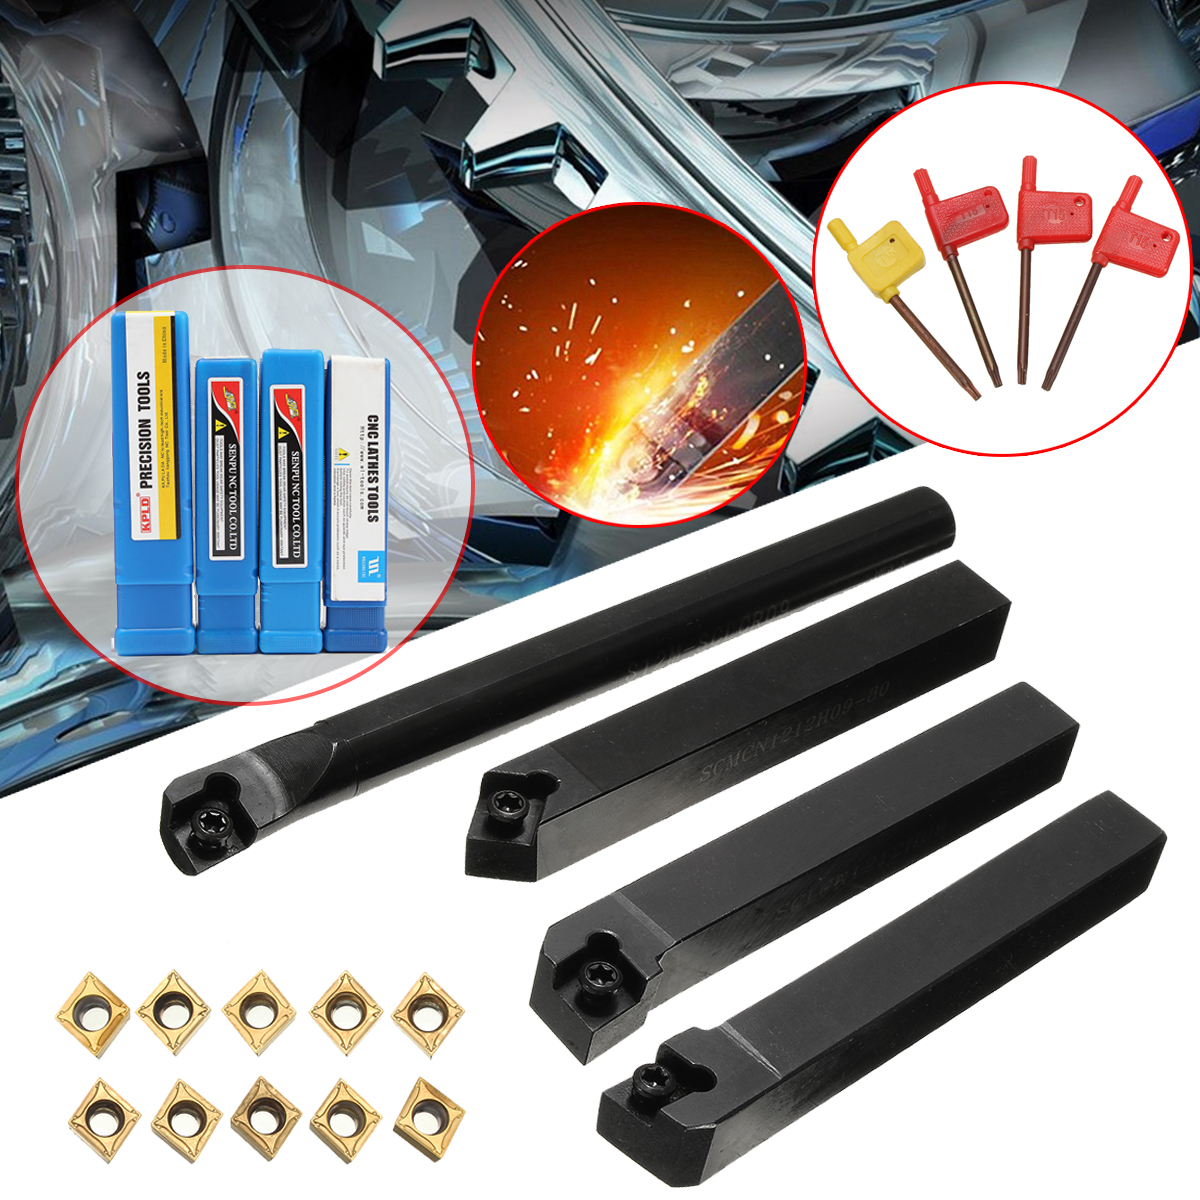 10X CCMT09T304 S12M-SCLCR09+1212H09+SCLCL+SCMCN1212H09 Lathe Turning Tool Holder Set Machine Tools T15 Wrench Carbide Insert Kit c16q sclcr09 carbide turning tool holder diameter 16mm length 180mm use tungsten insert